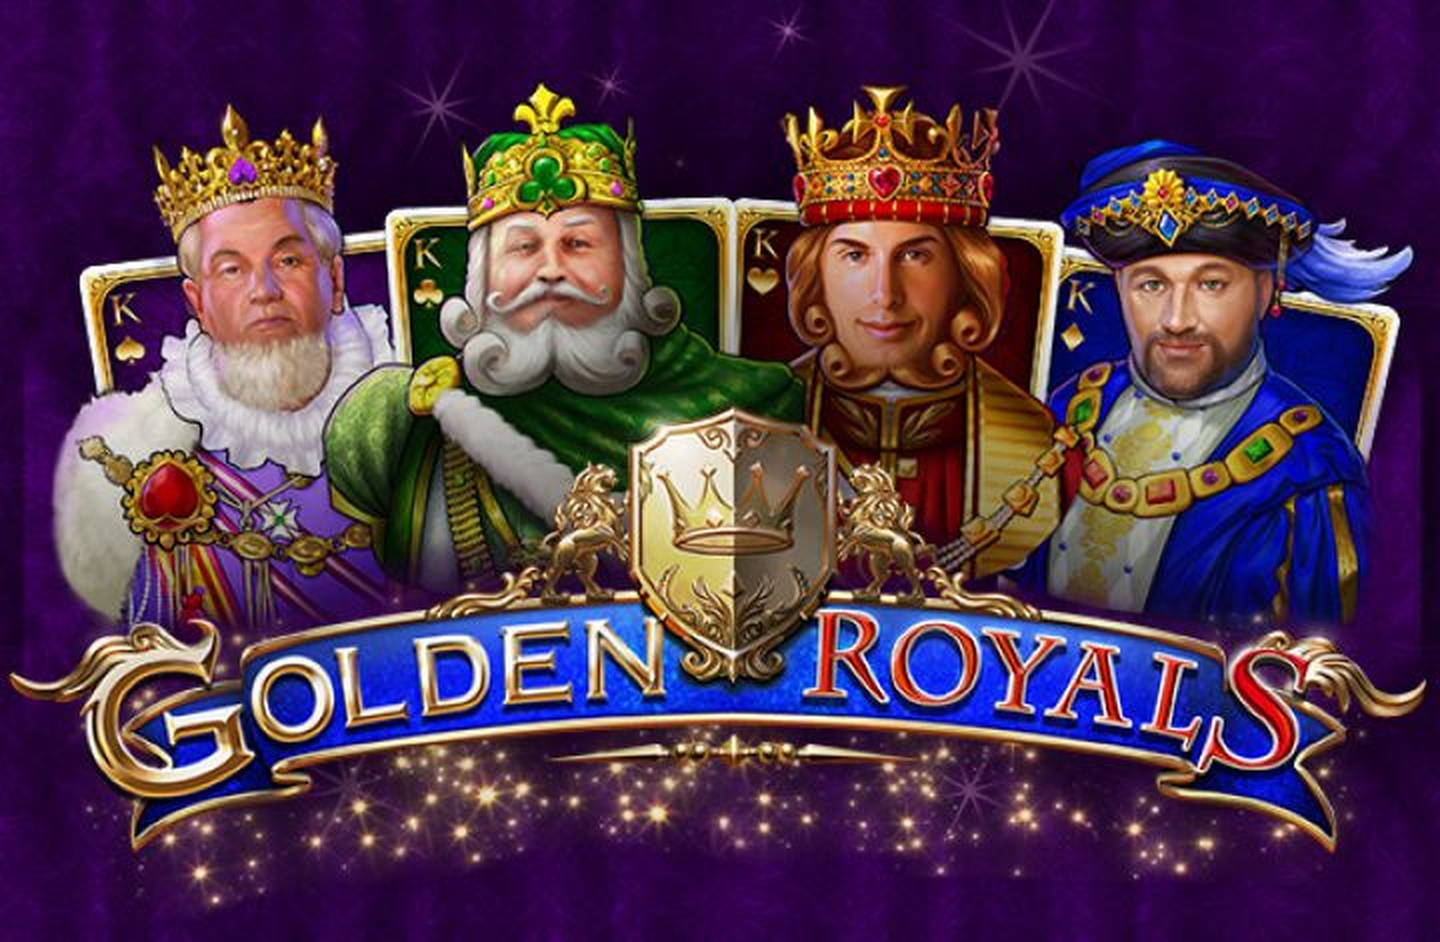 The Golden Royals Online Slot Demo Game by Booming Games